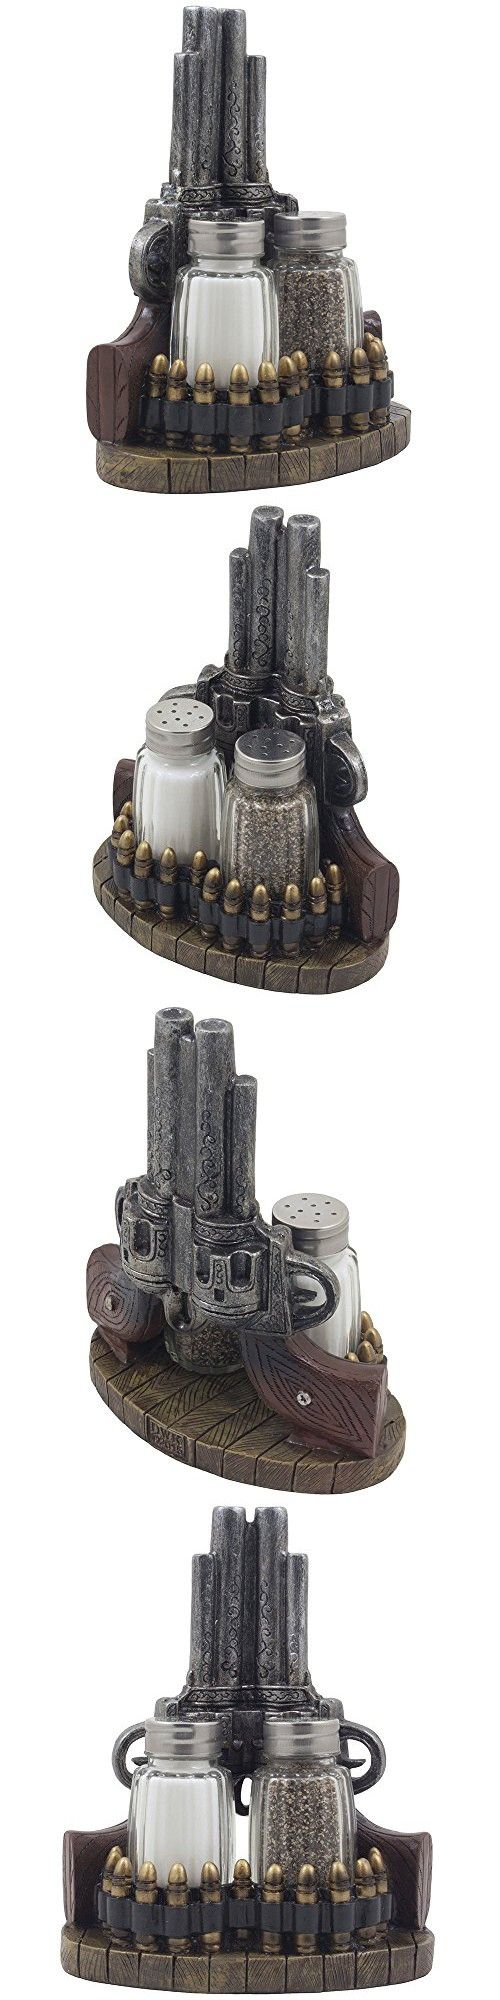 Classic Country Western Six-shooter Pistols with Bullets Salt and Pepper Shaker Set on Decorative Display Stand Figurine in Wild West Kitchen Decor Table Centerpieces As Rustic Gifts for Cowboys